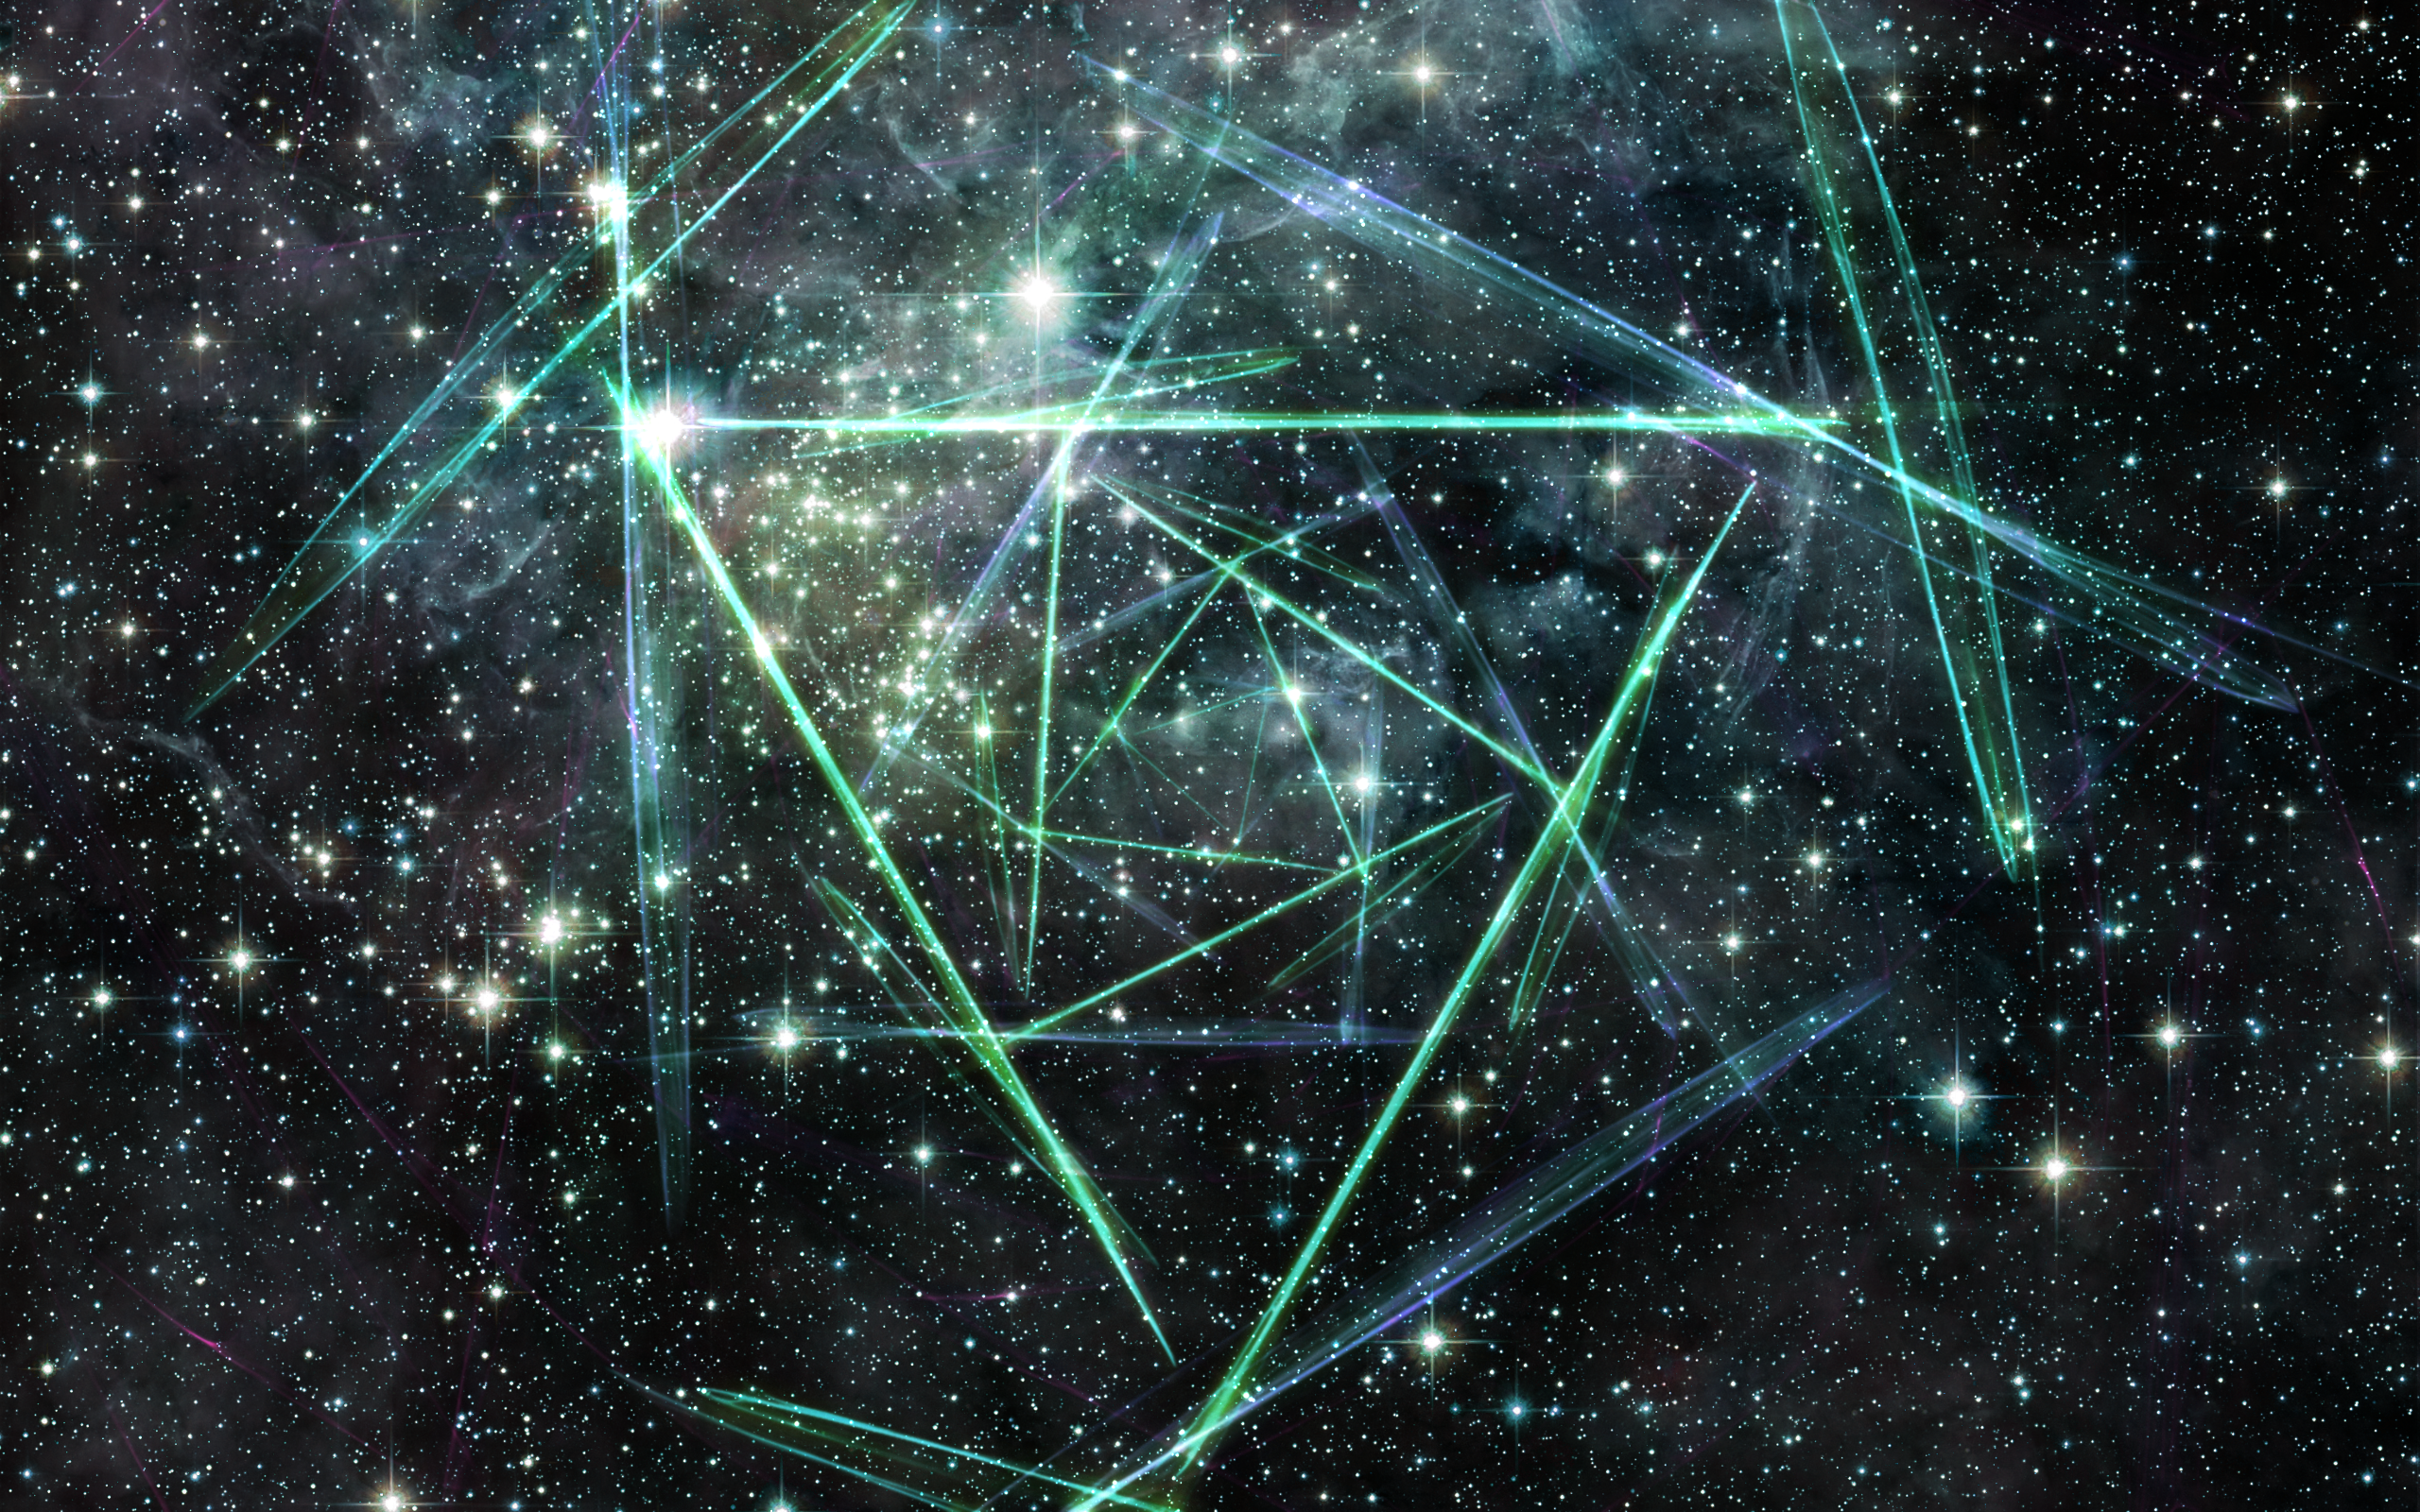 General 2560x1600 space triangle abstract stars